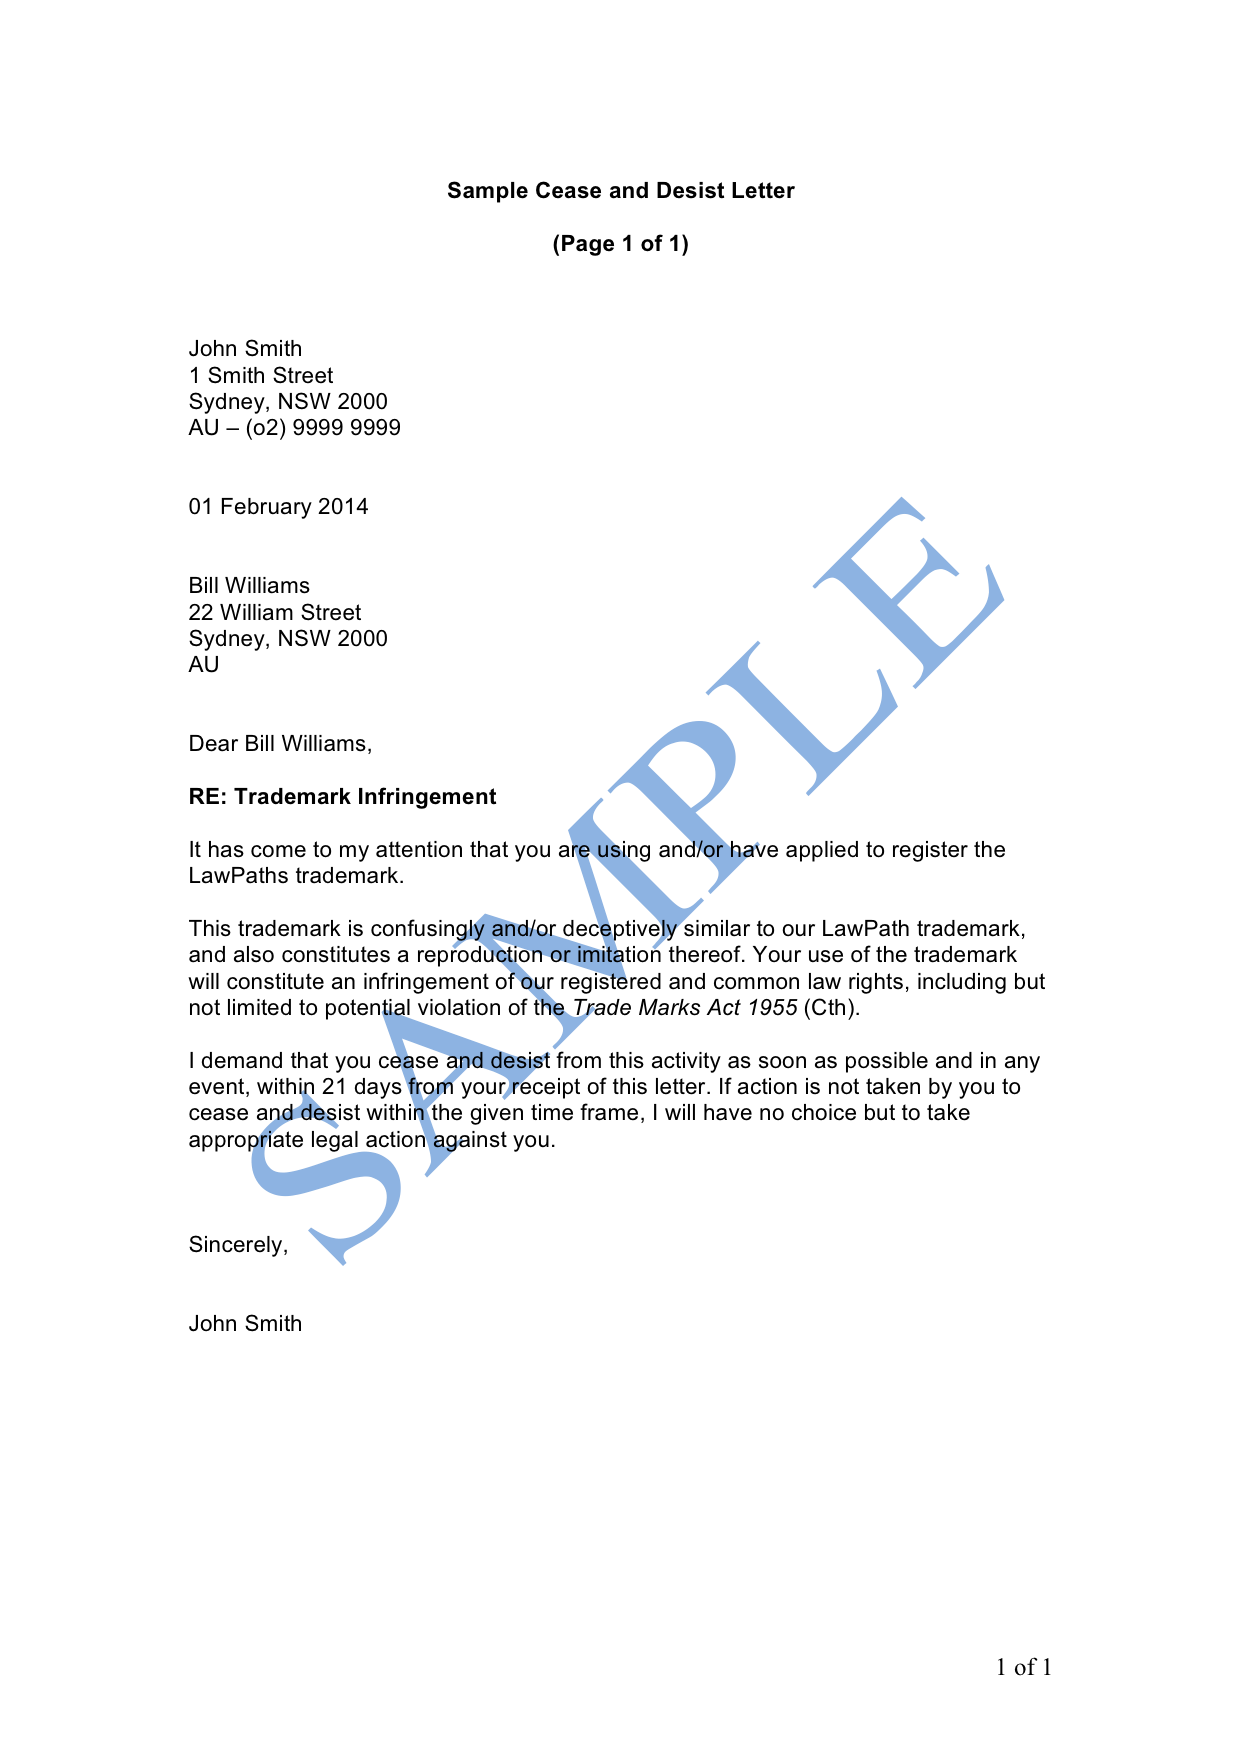 Cease and desist letter example idealstalist cease and desist letter example thecheapjerseys Image collections